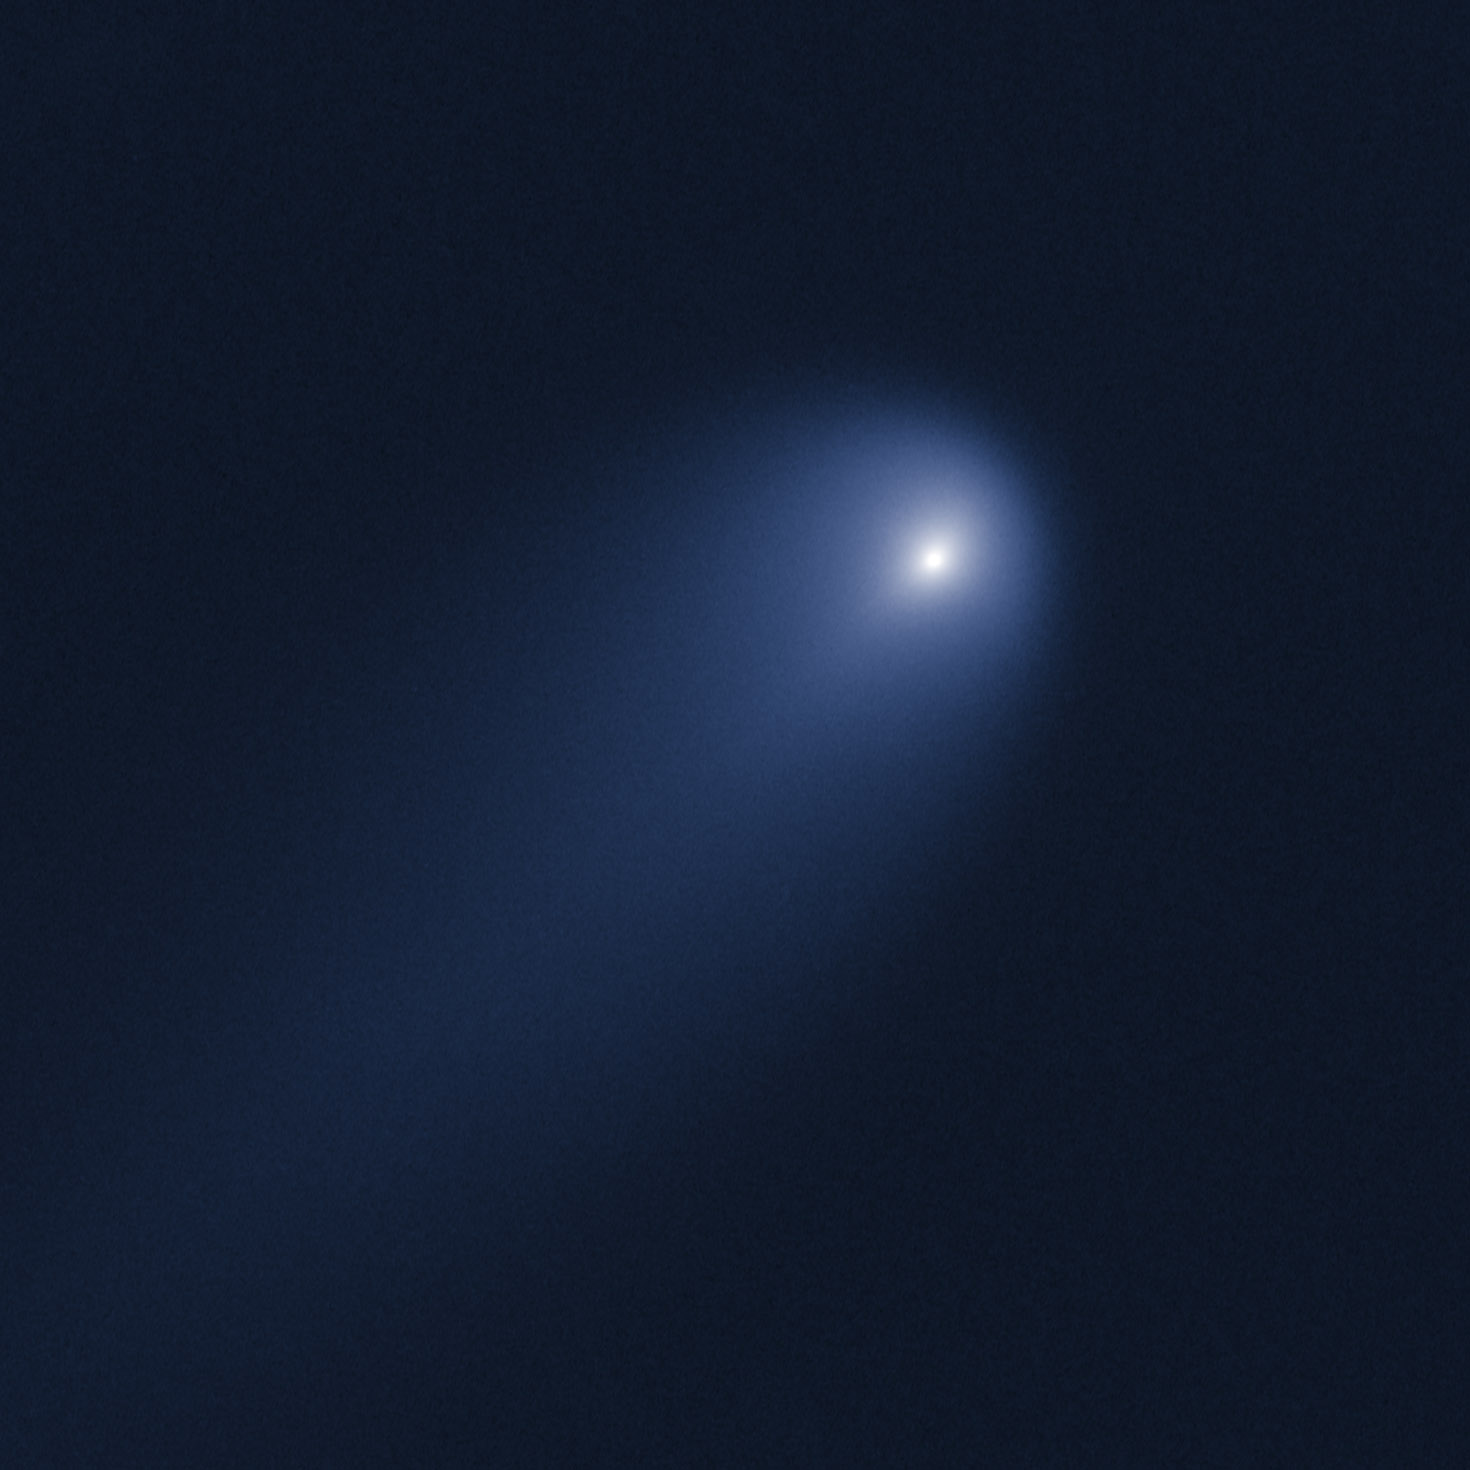 Scientists to Eye Potential 'Comet of the Century' with Balloon Mission